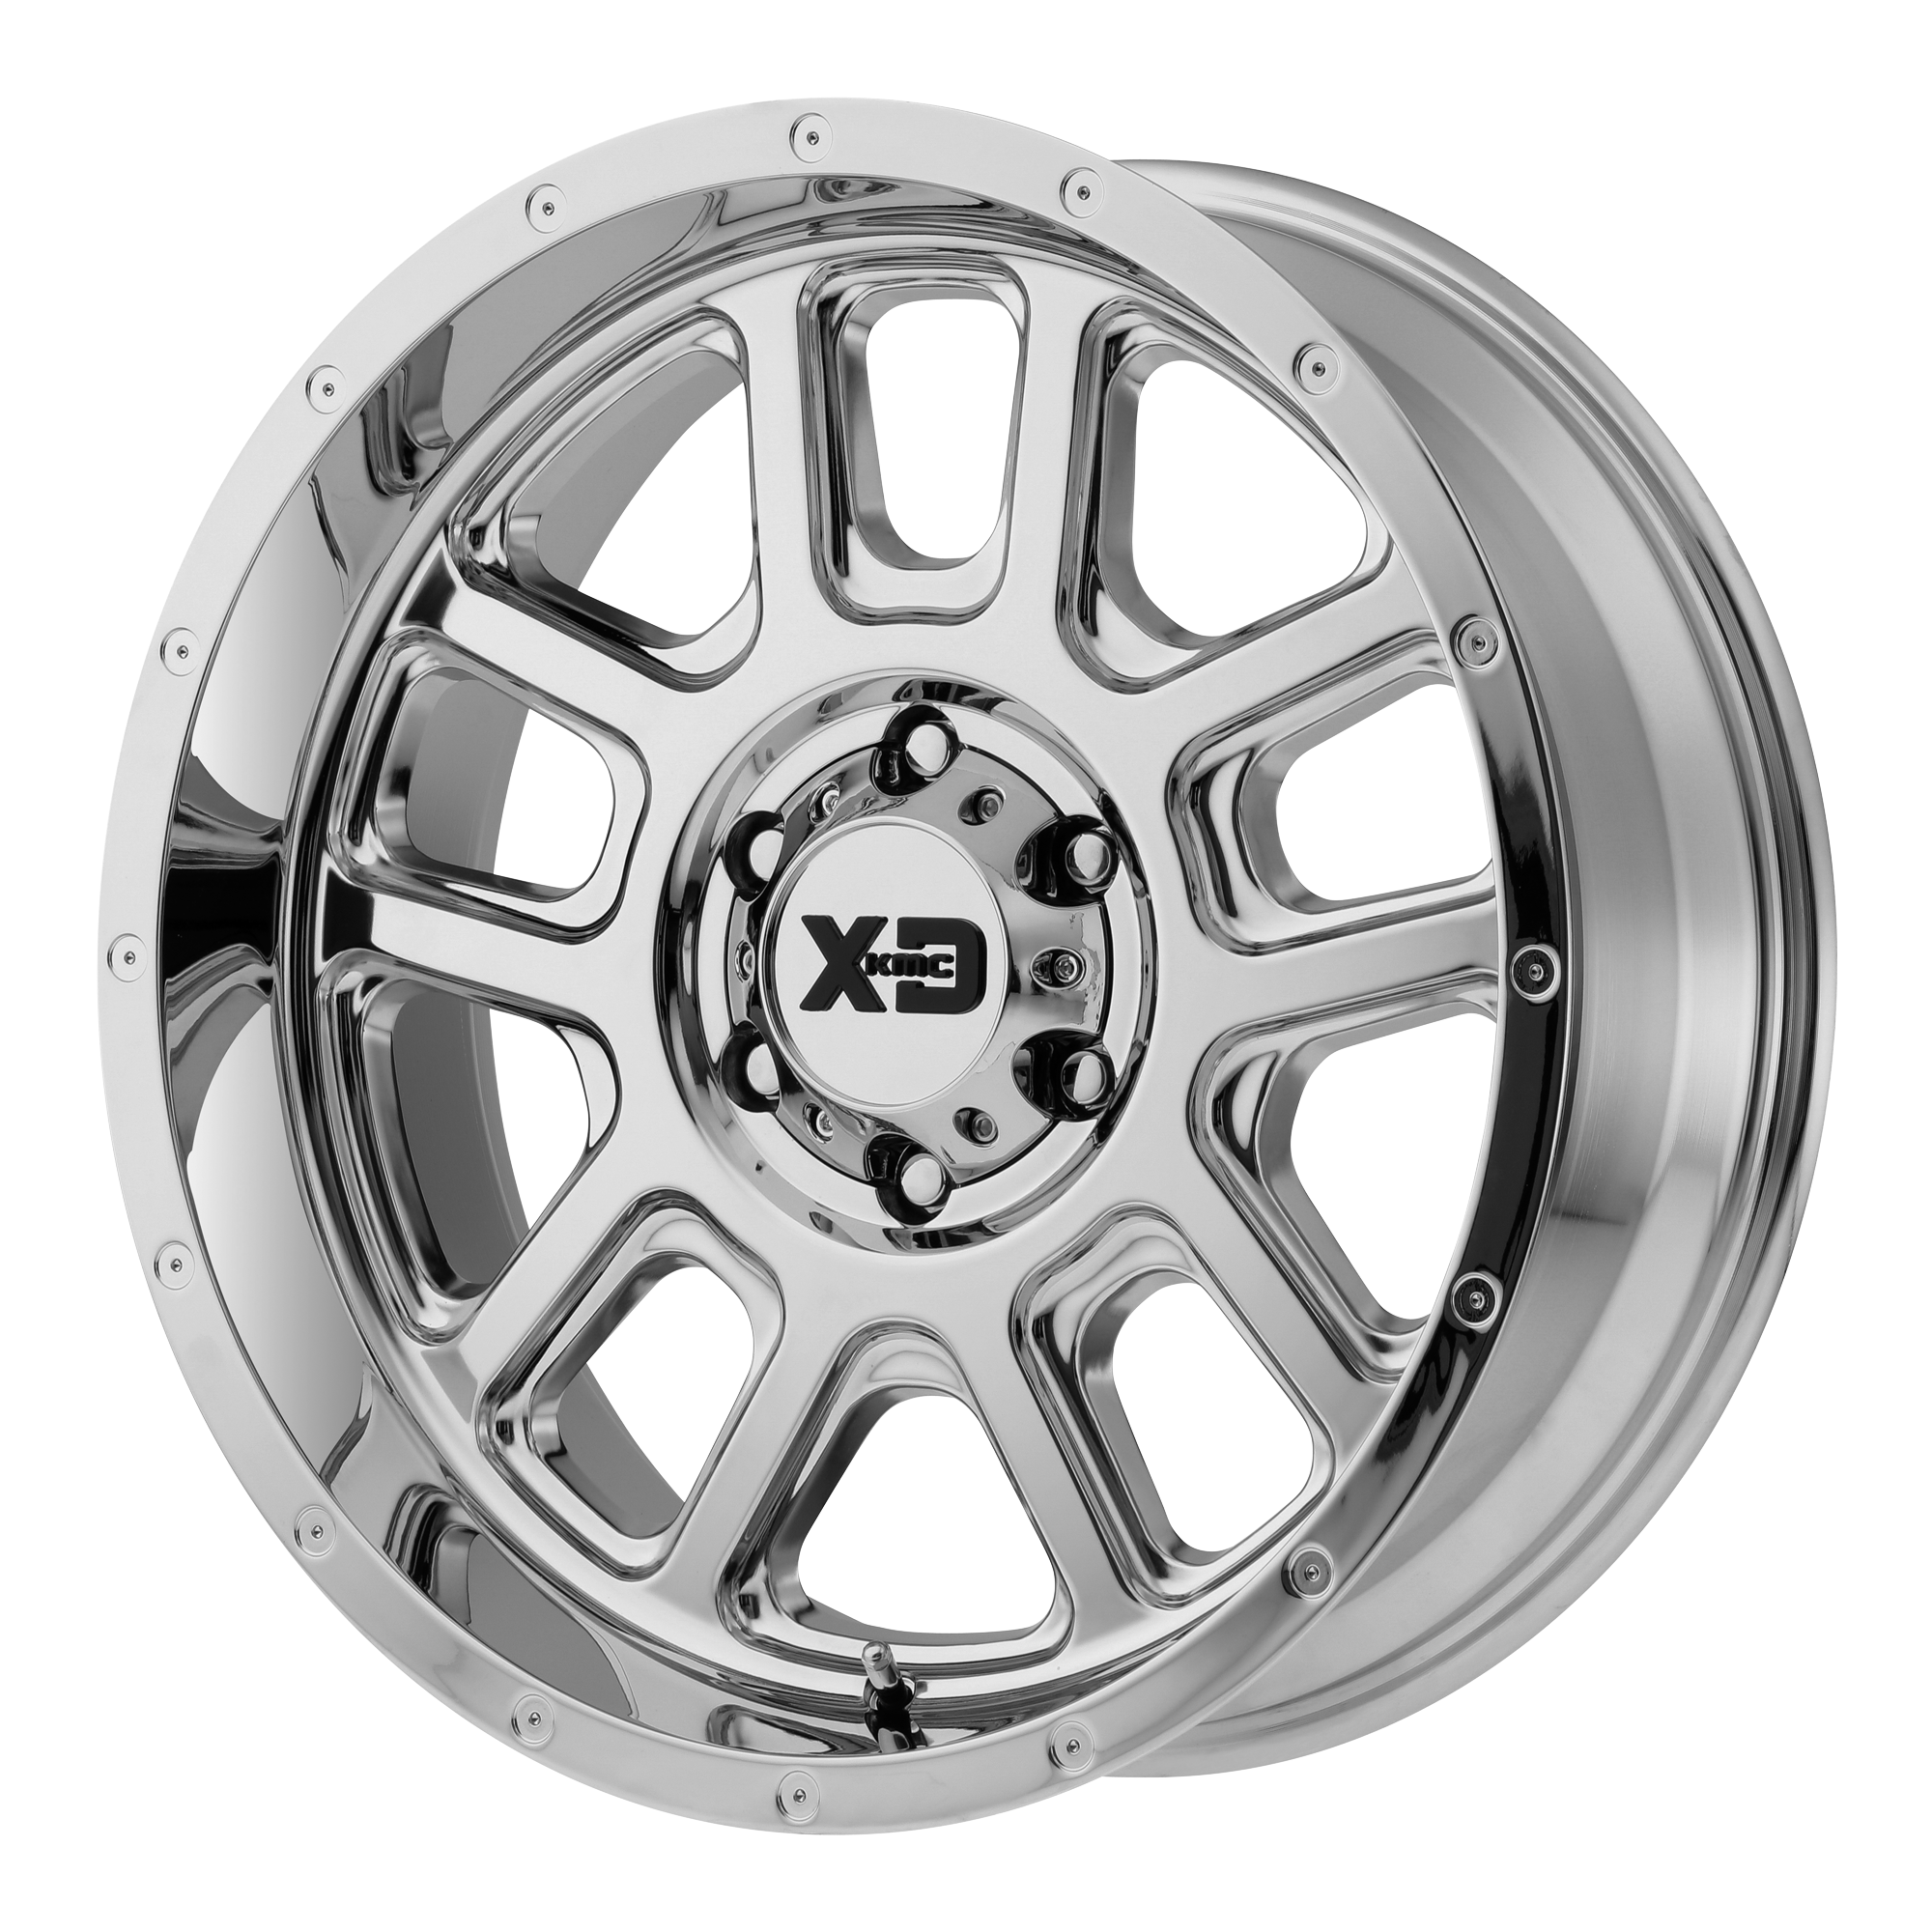 XD Series XD828 Wheels